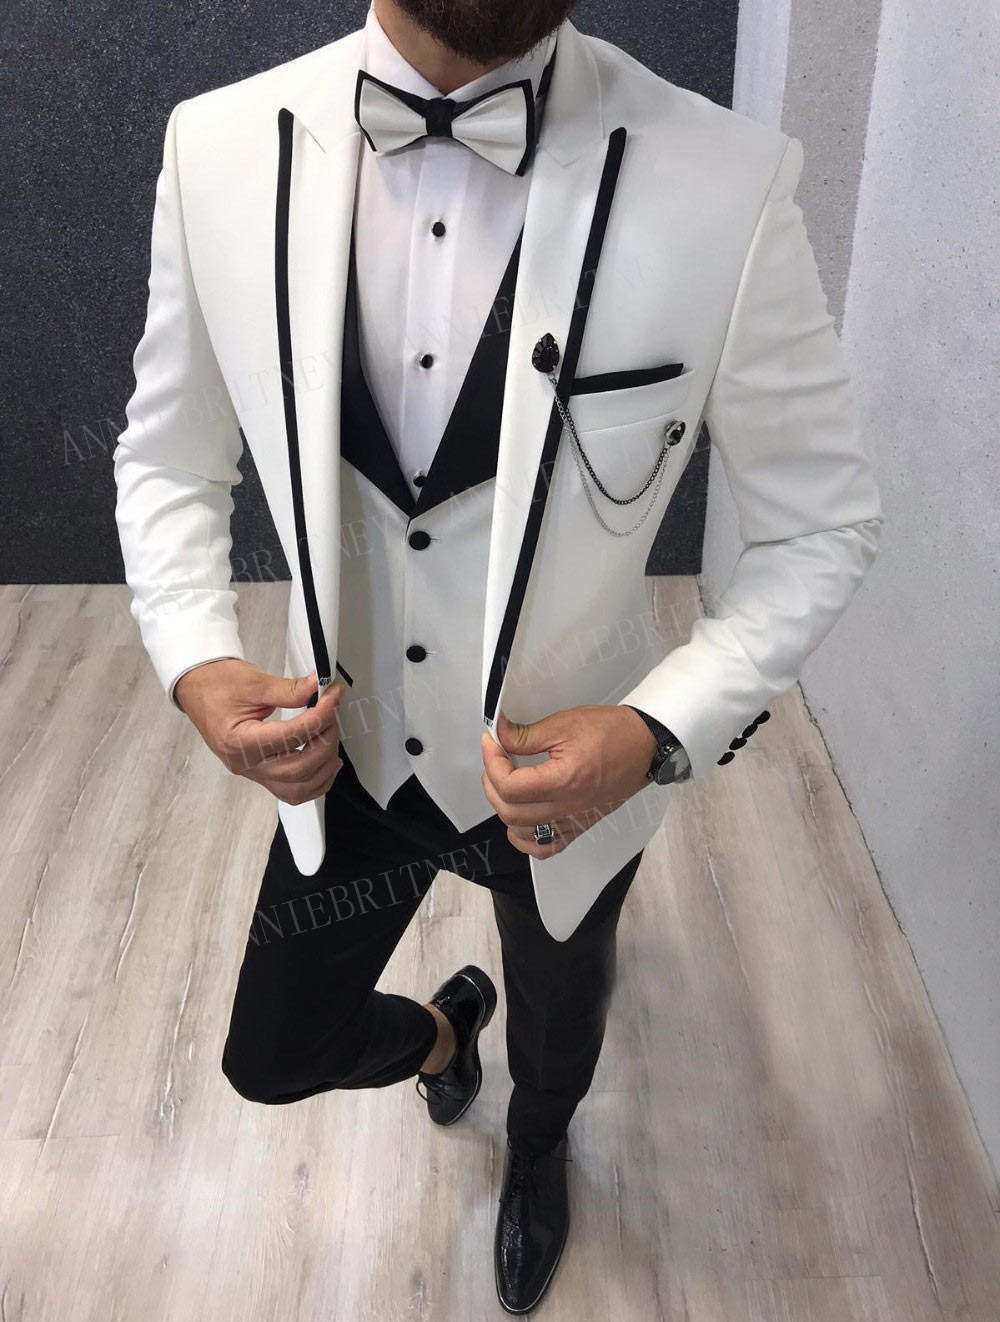 ANNIEBRITNEY 2019 Customize Peak Lapel Groom Tuxedos Formal Men Wedding Suits Prom Best Man Blazer Pants Fashion Male Suit Set